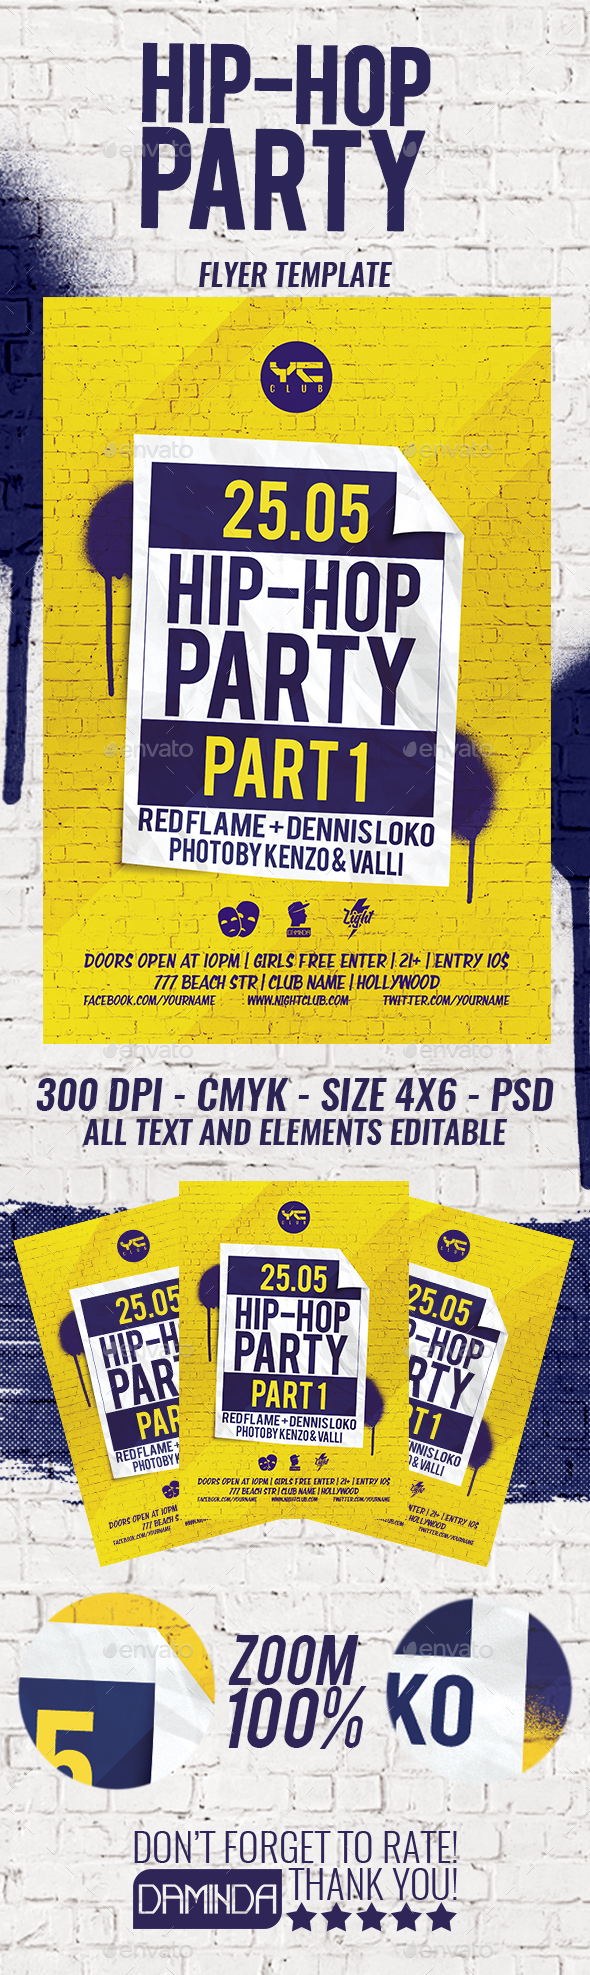 Hip-Hop Party Flyer Template - Clubs & Parties Events